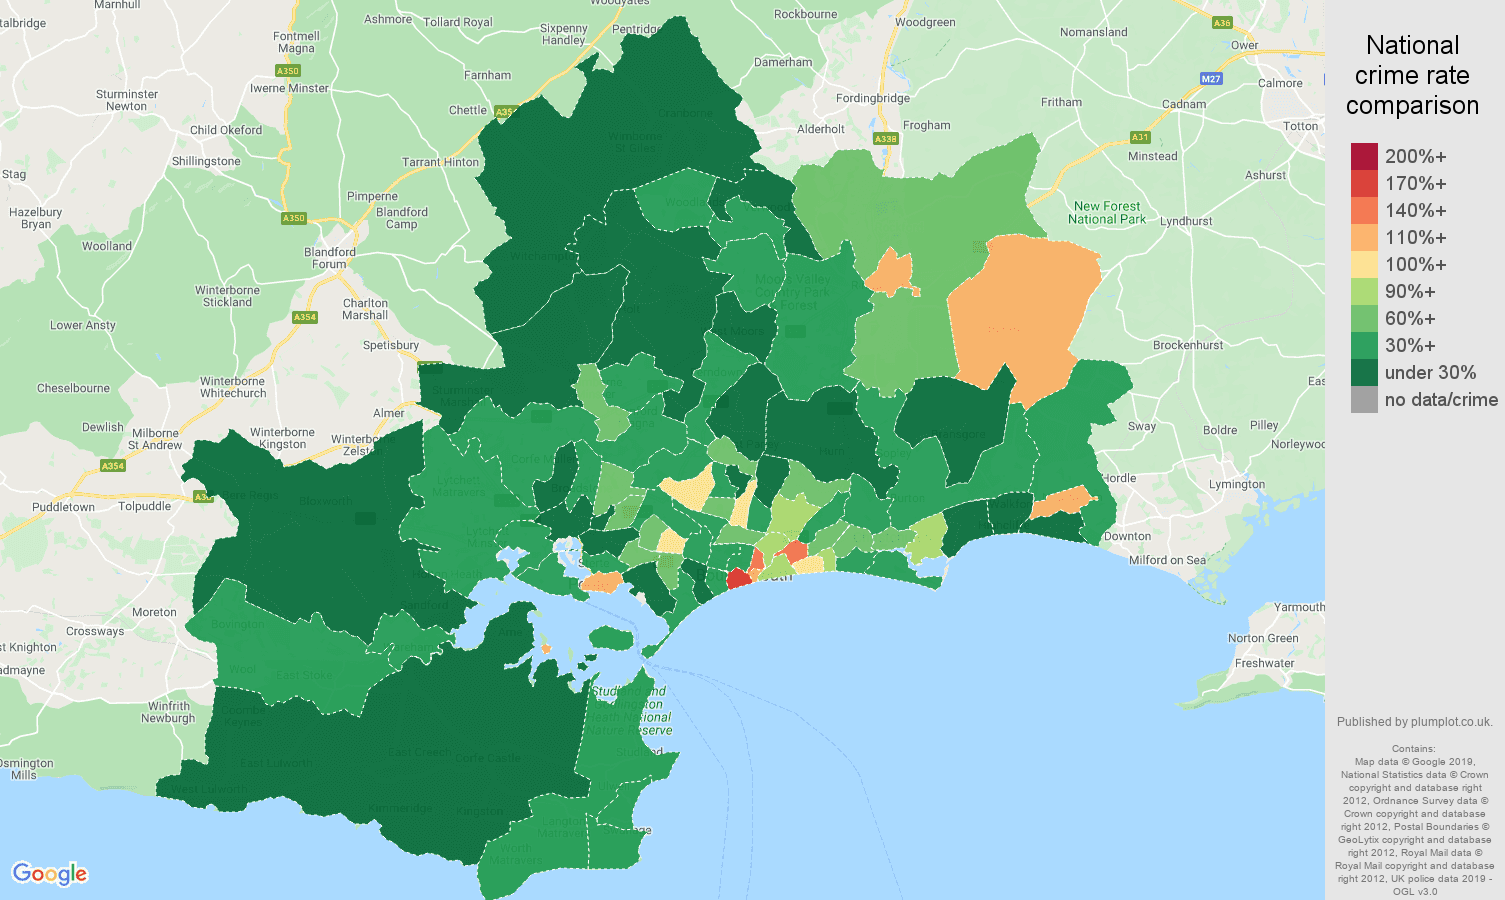 Bournemouth public order crime rate comparison map